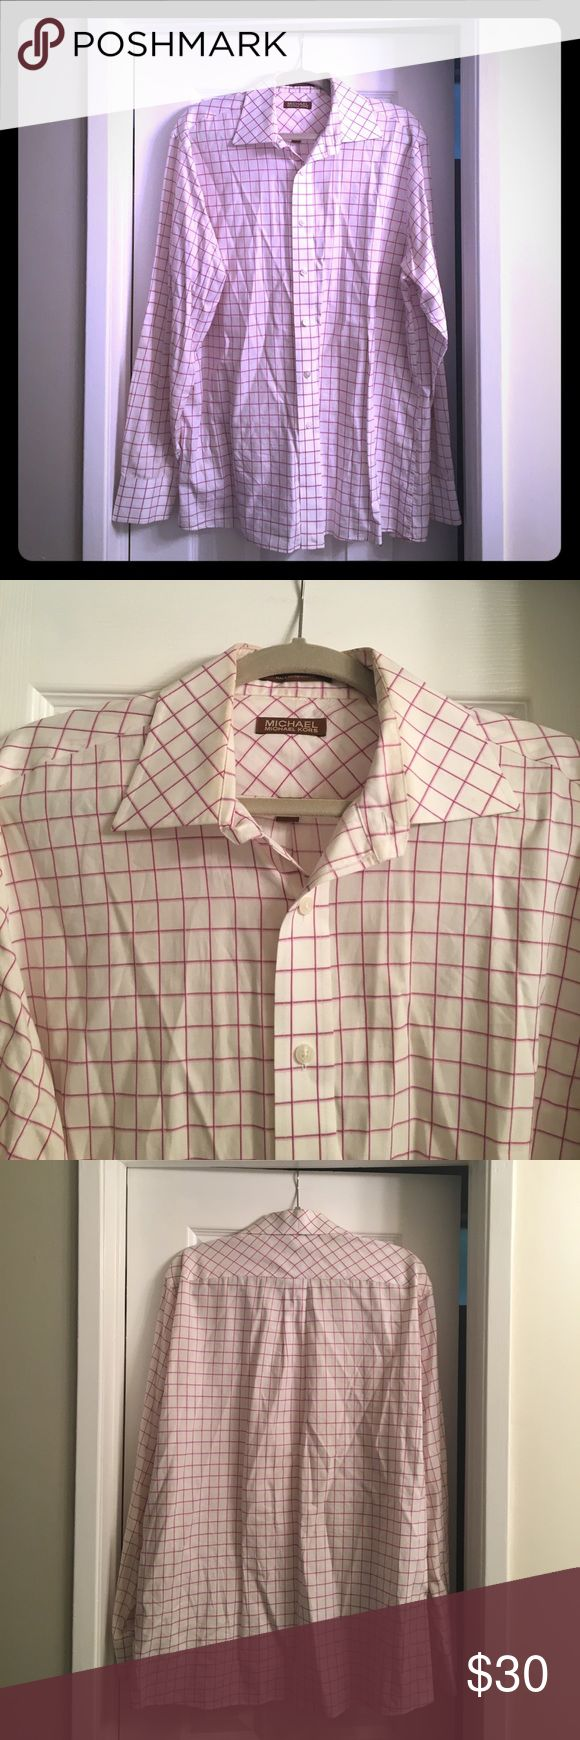 Men's shirt Michael Kors men's shirt. Red and pink check pattern. Excellent condition like new. Michael Kors Shirts Casual Button Down Shirts